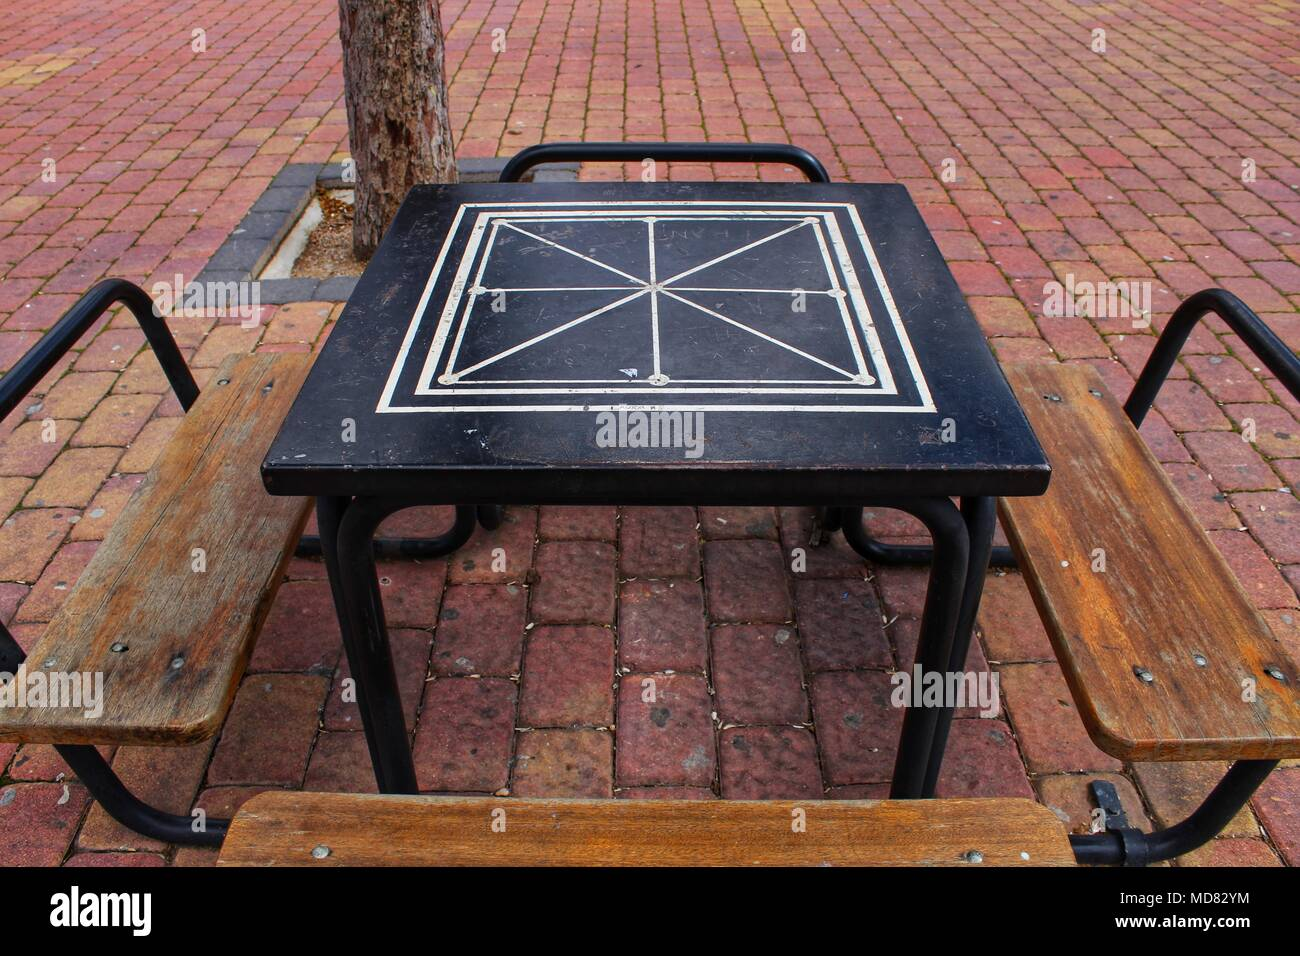 Board games on the street on wooden table and chairs Stock Photo